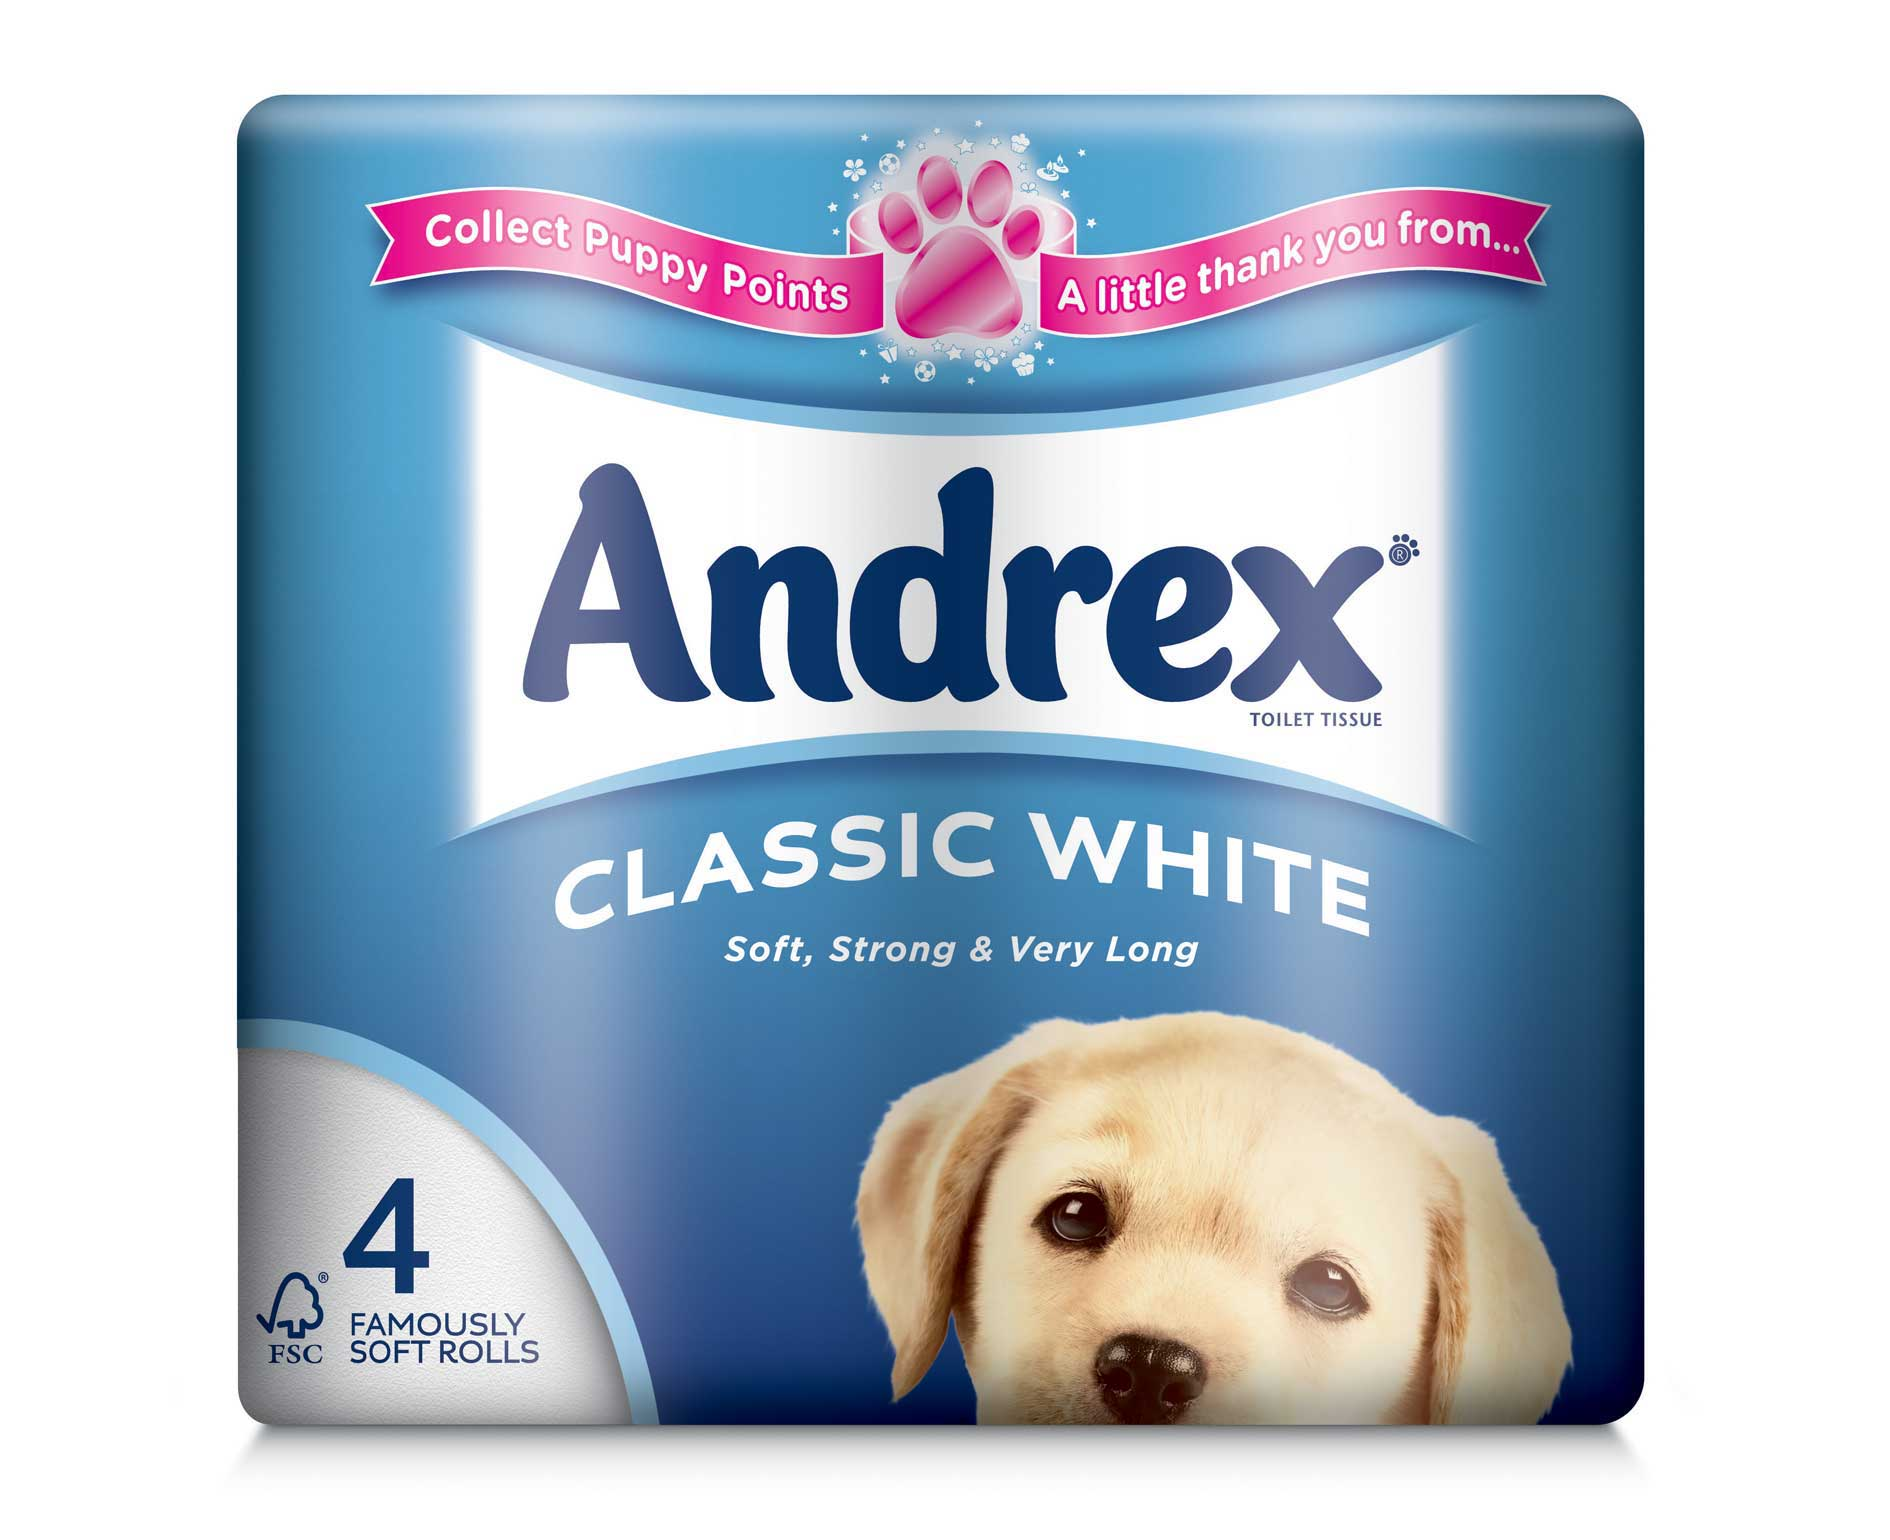 Image Andrex Jpg The 39 Clues Message Board Wiki